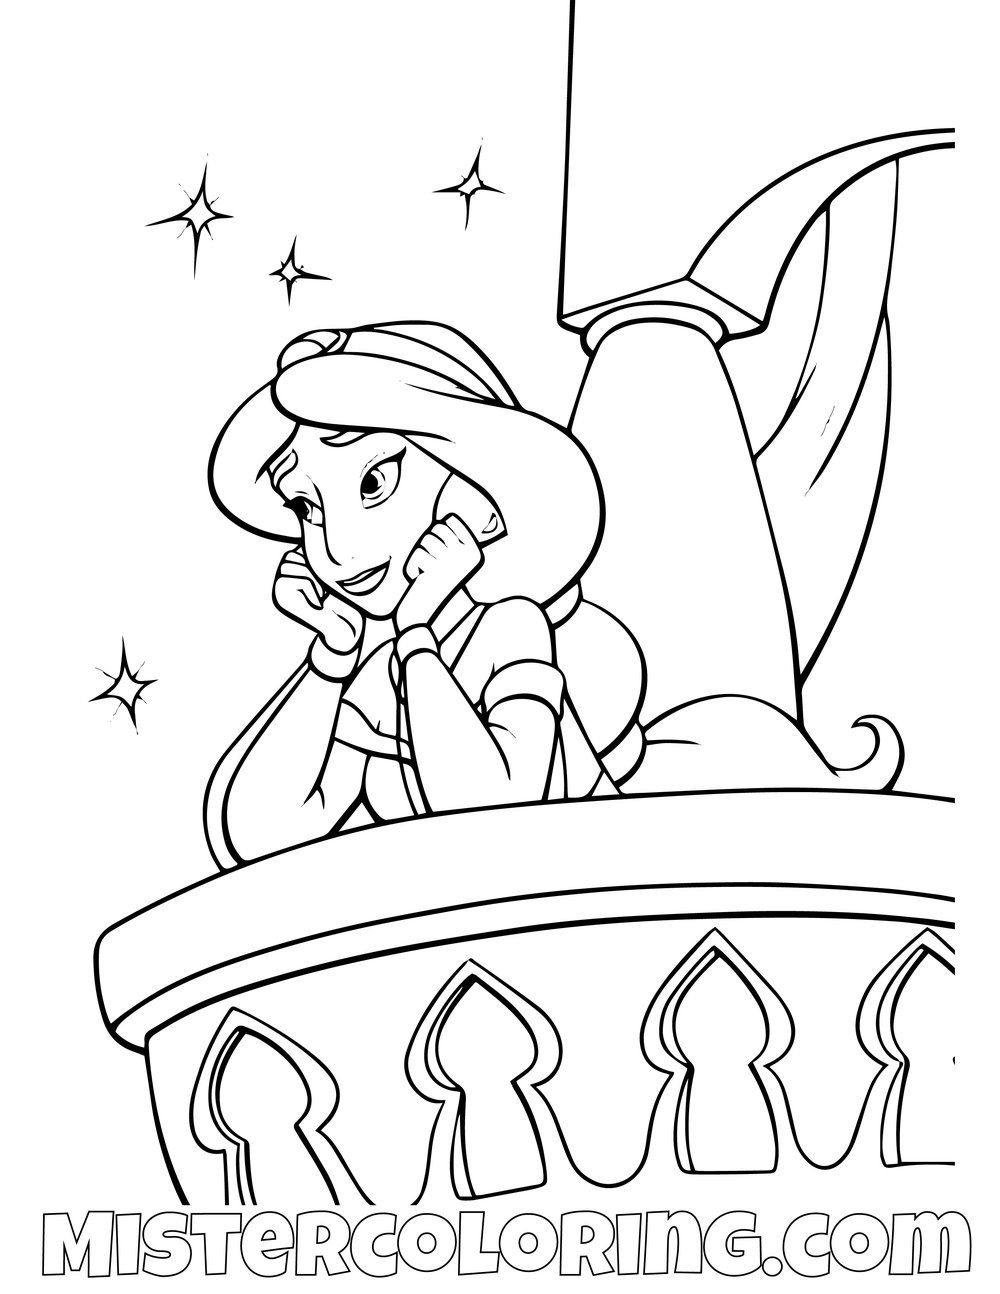 Free Disney Princess Coloring Pages Jasmine, Download Free Clip ... | 1294x1000